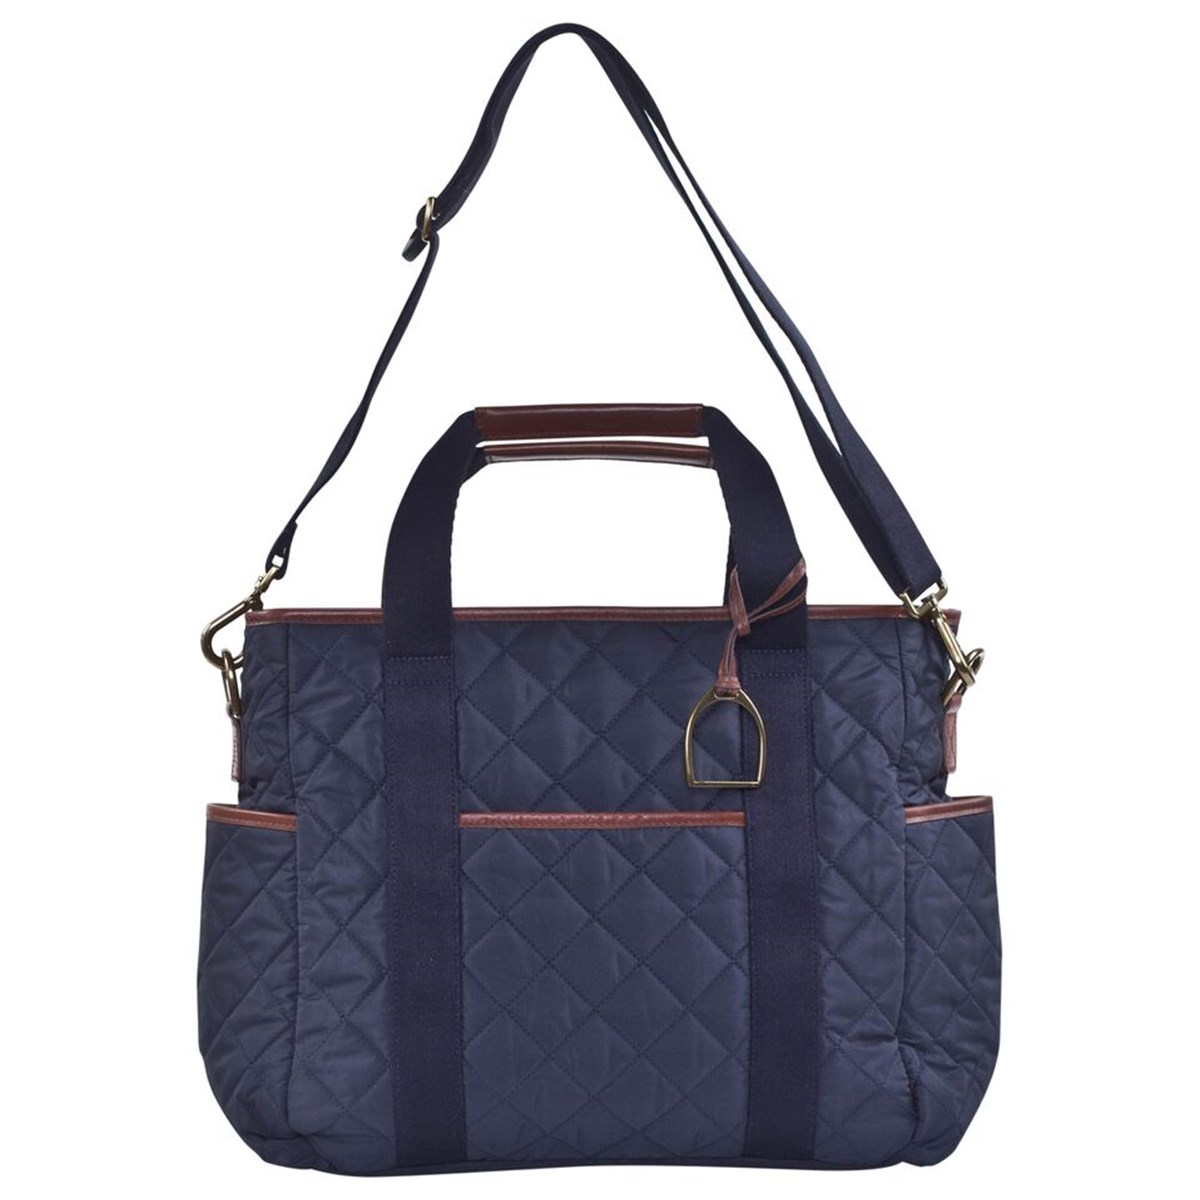 8a9eb2c117c5 Ralph Lauren Navy Quilted Changing Bag